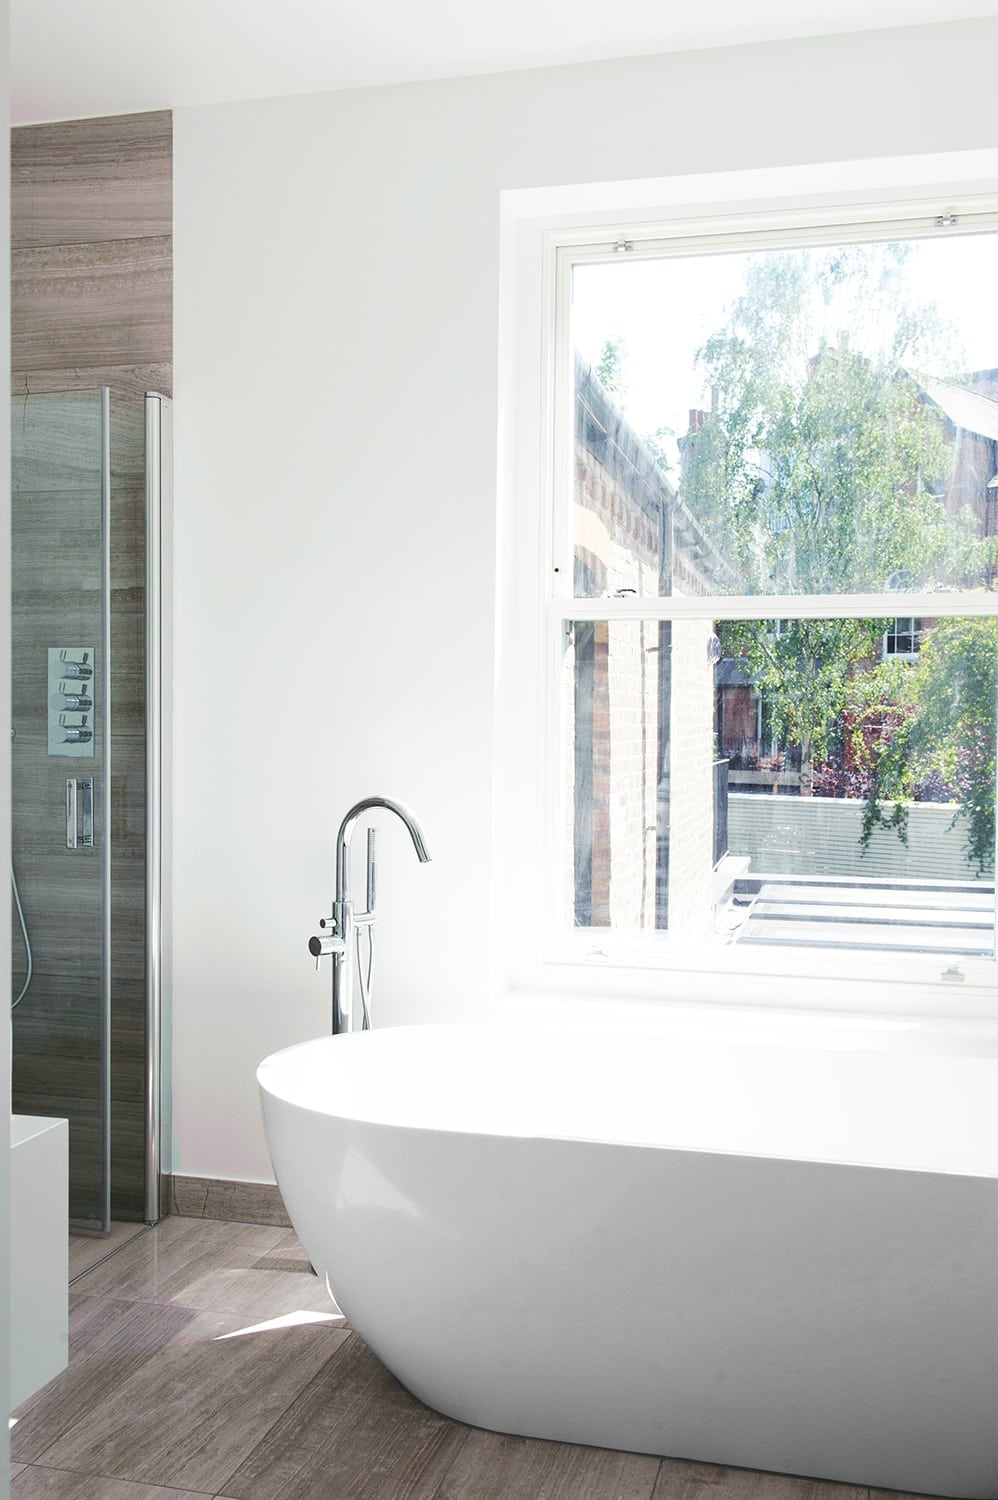 Hampstead Heath - residential house ful refurbishment extension bathroom design